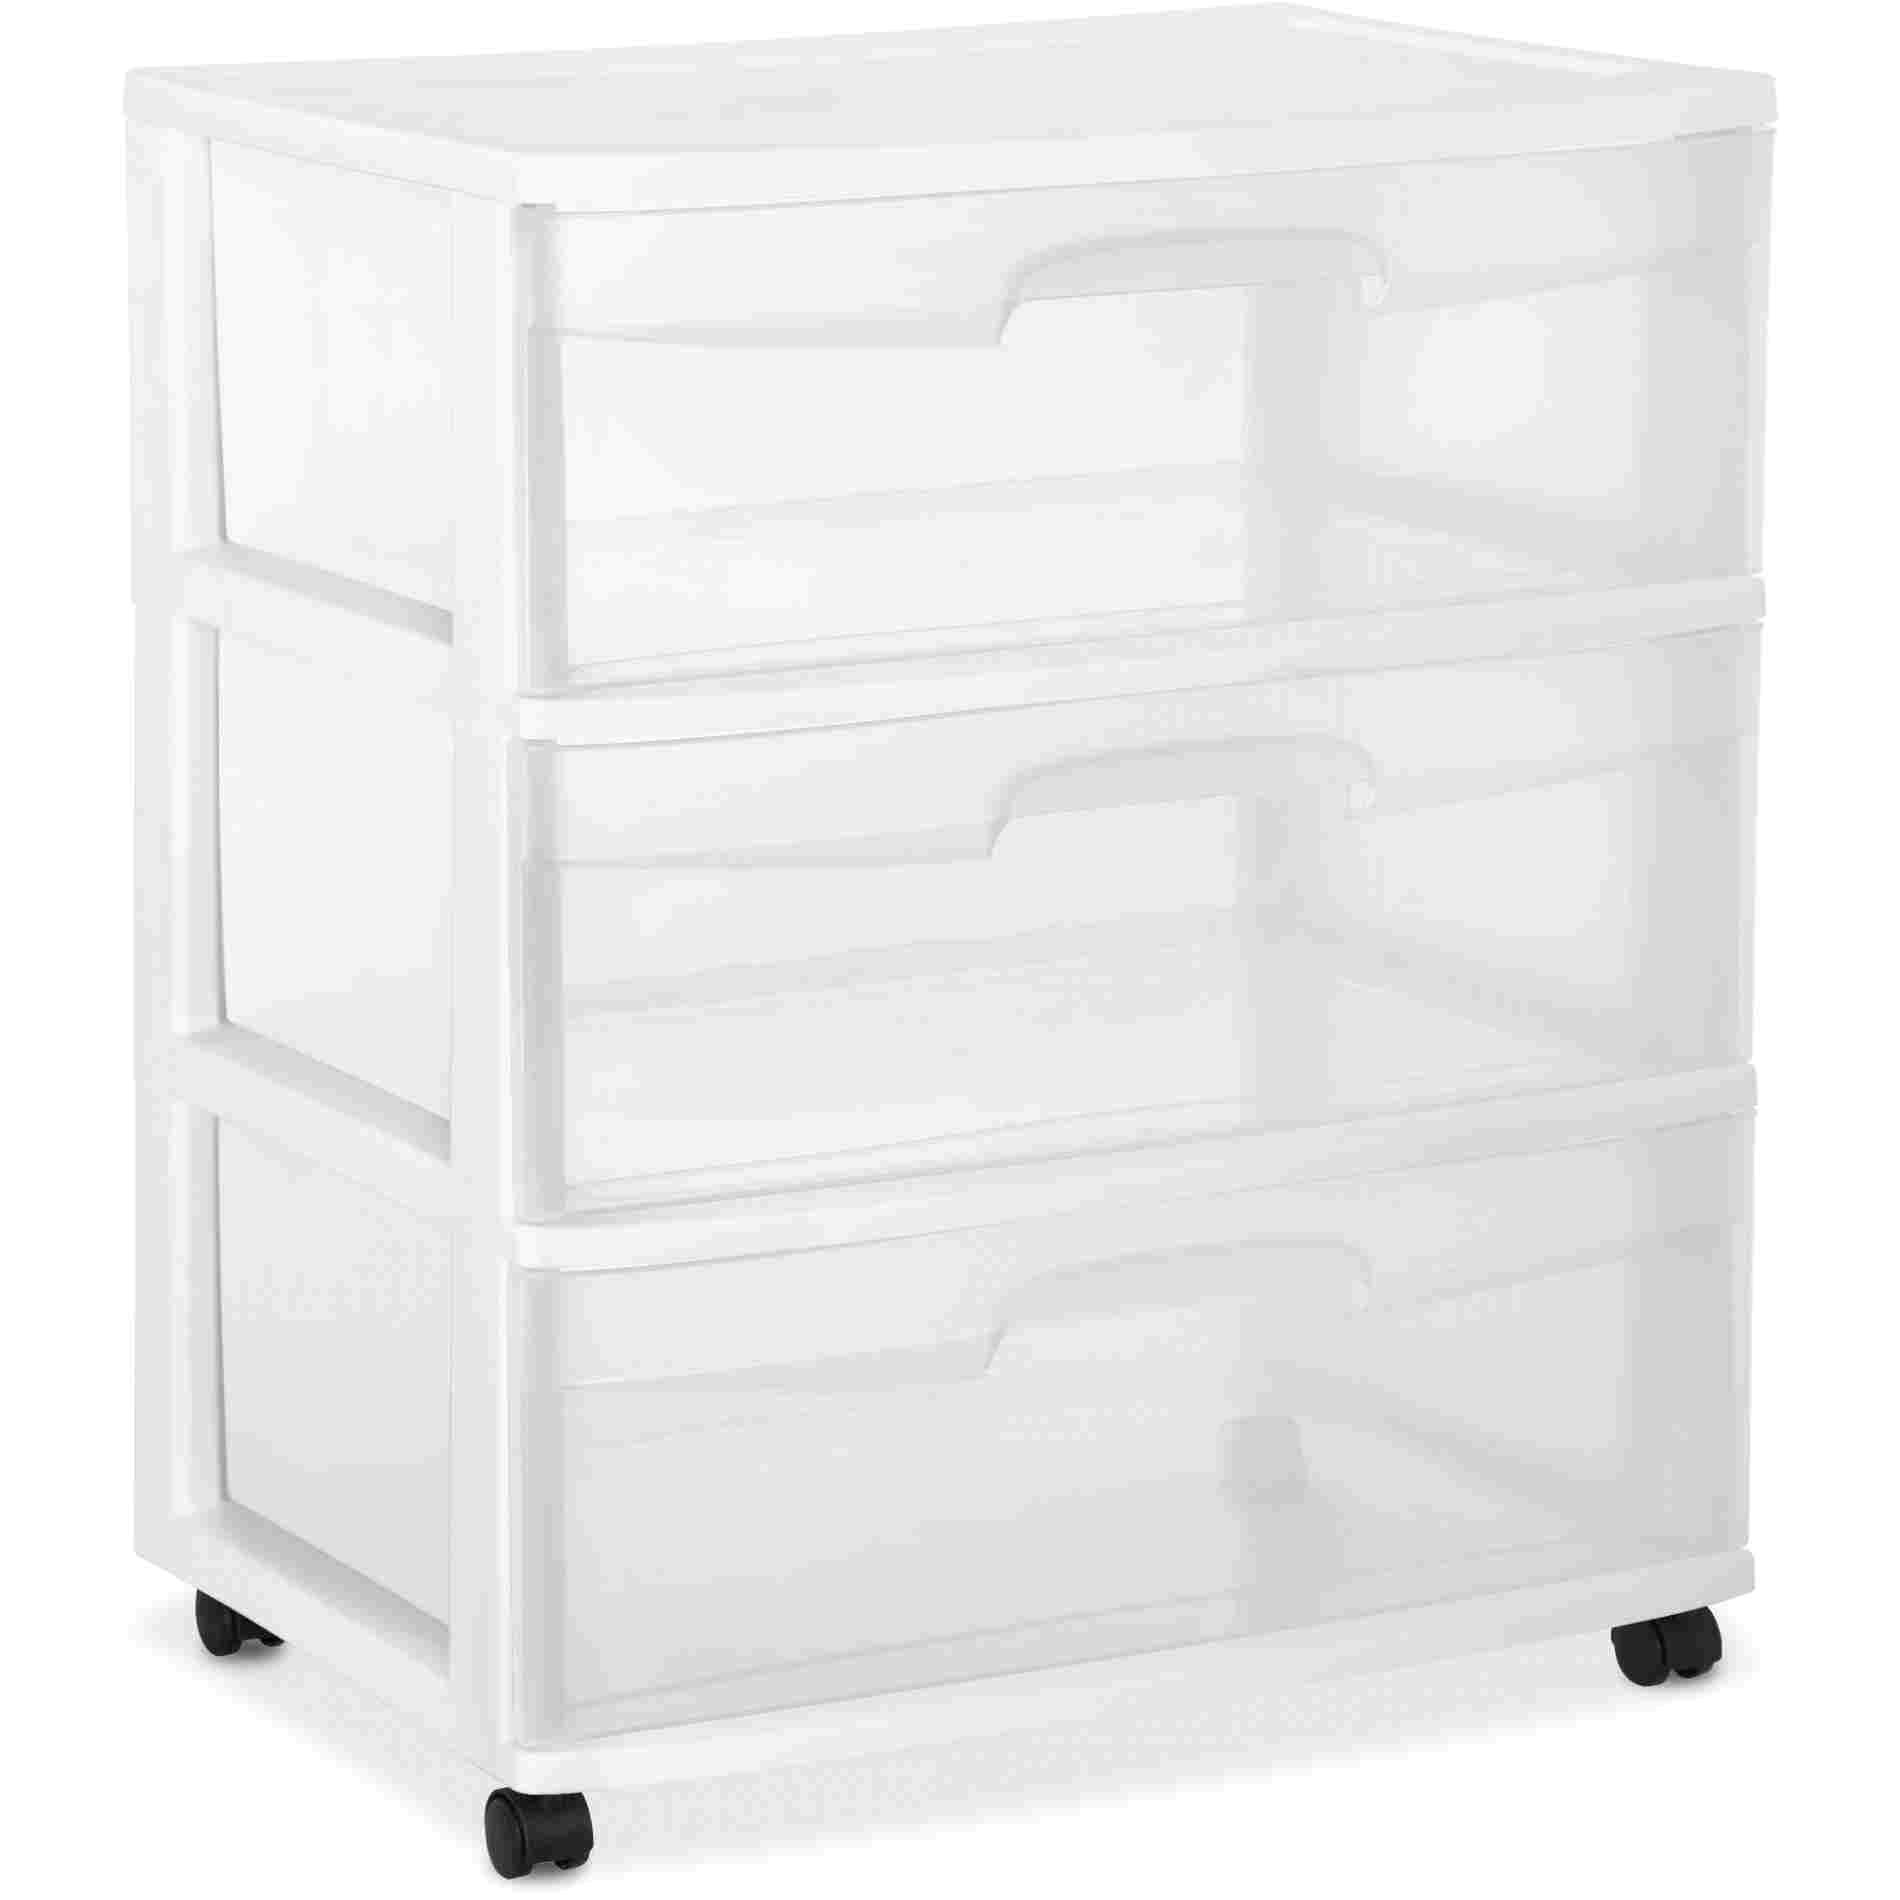 3 drawer plastic storage walmart